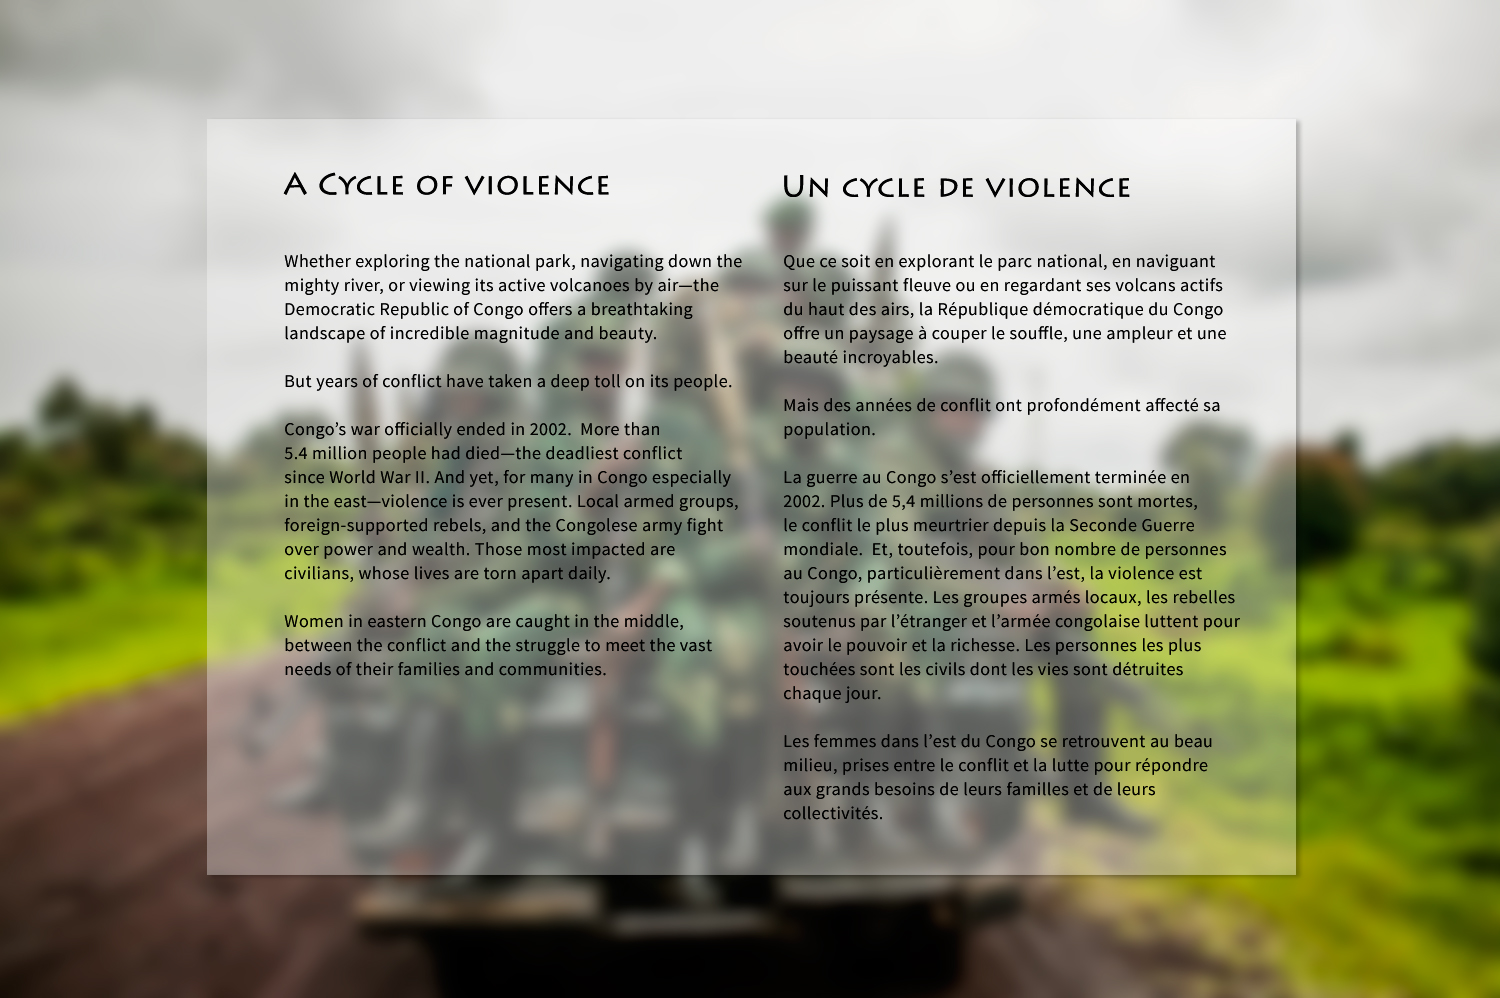 a-cycle-of-violence-textpanel2.jpg